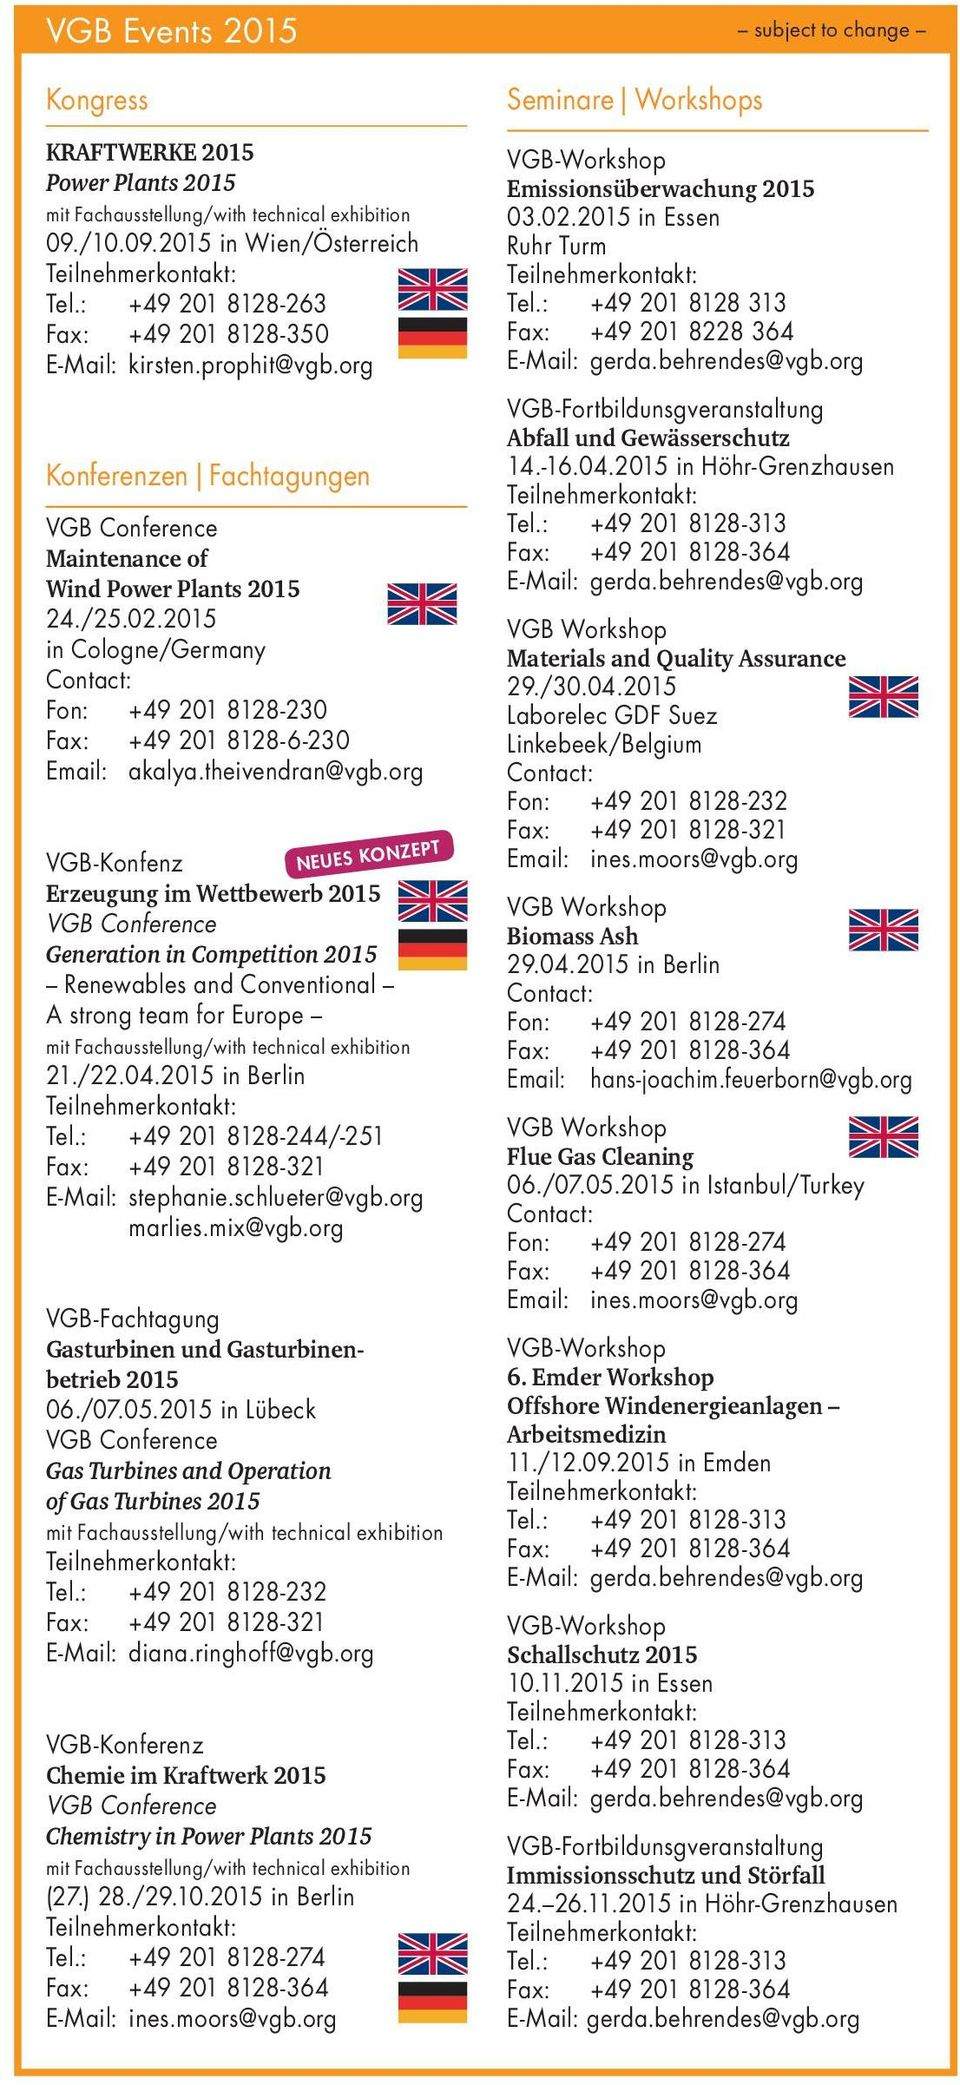 2015 in Cologne/Germany Contact: Fon: +49 201 8128-230 Fax: +49 201 8128-6-230 Email: akalya.theivendran@vgb.